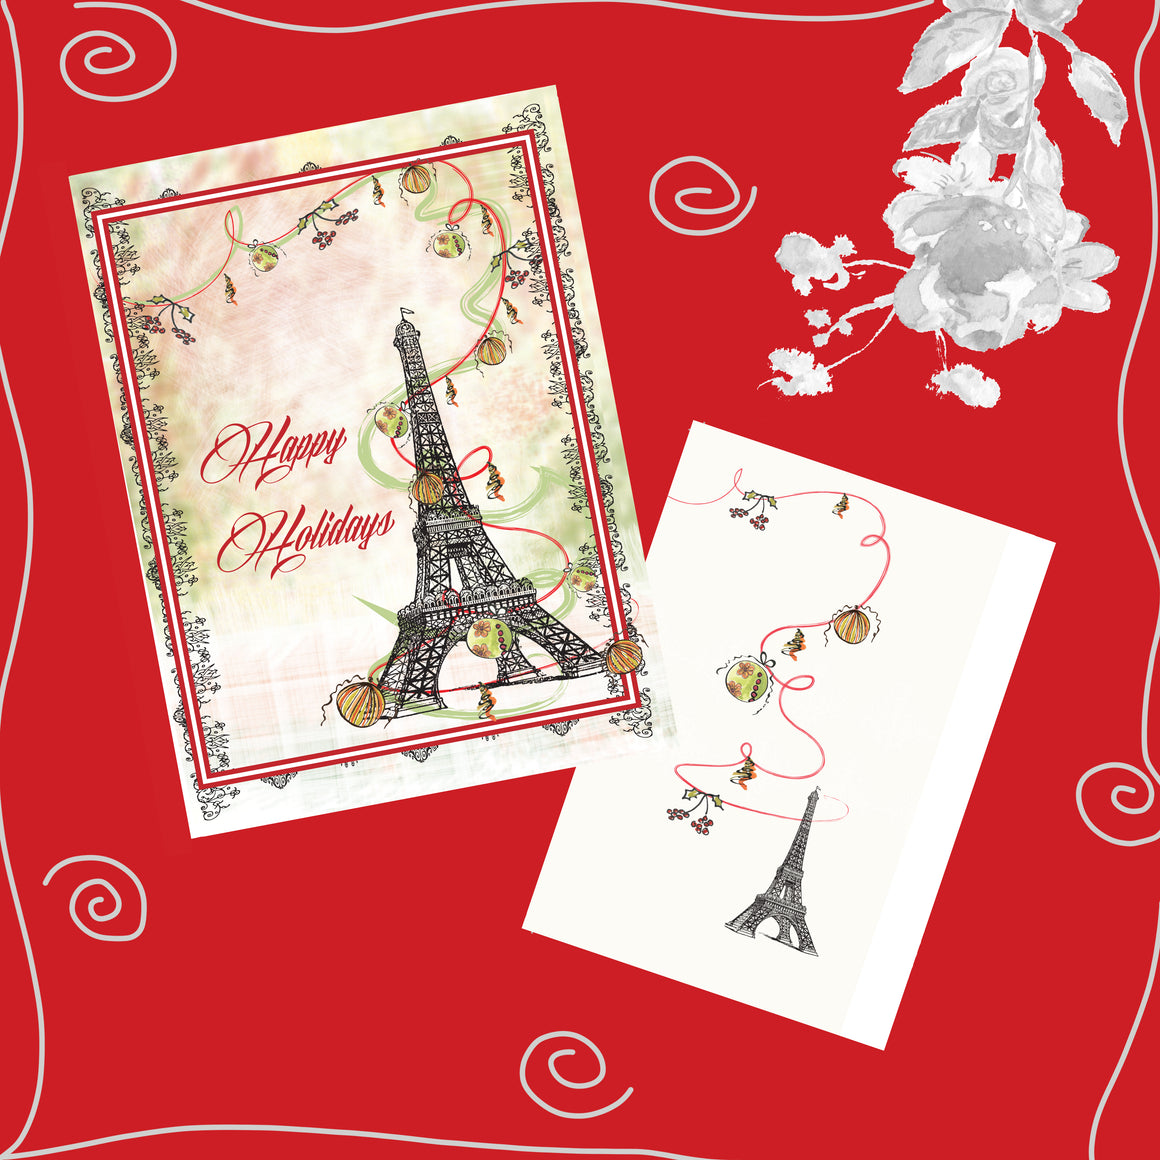 6 CARDS - Eiffel Tower Holiday Red and Gold Hand-Glittered Cards - Dreams After All